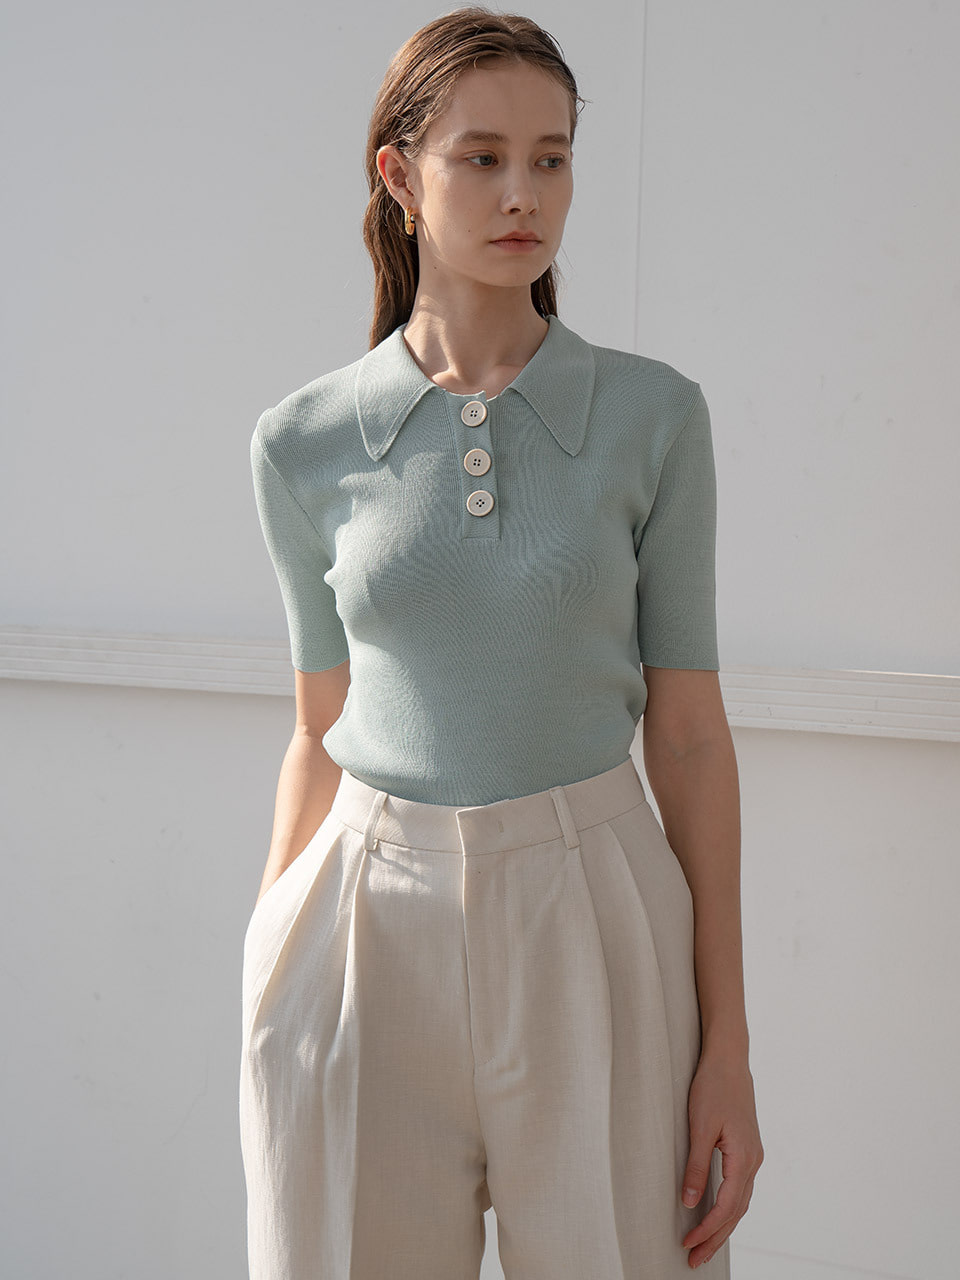 Pastel knit collar tee in mint